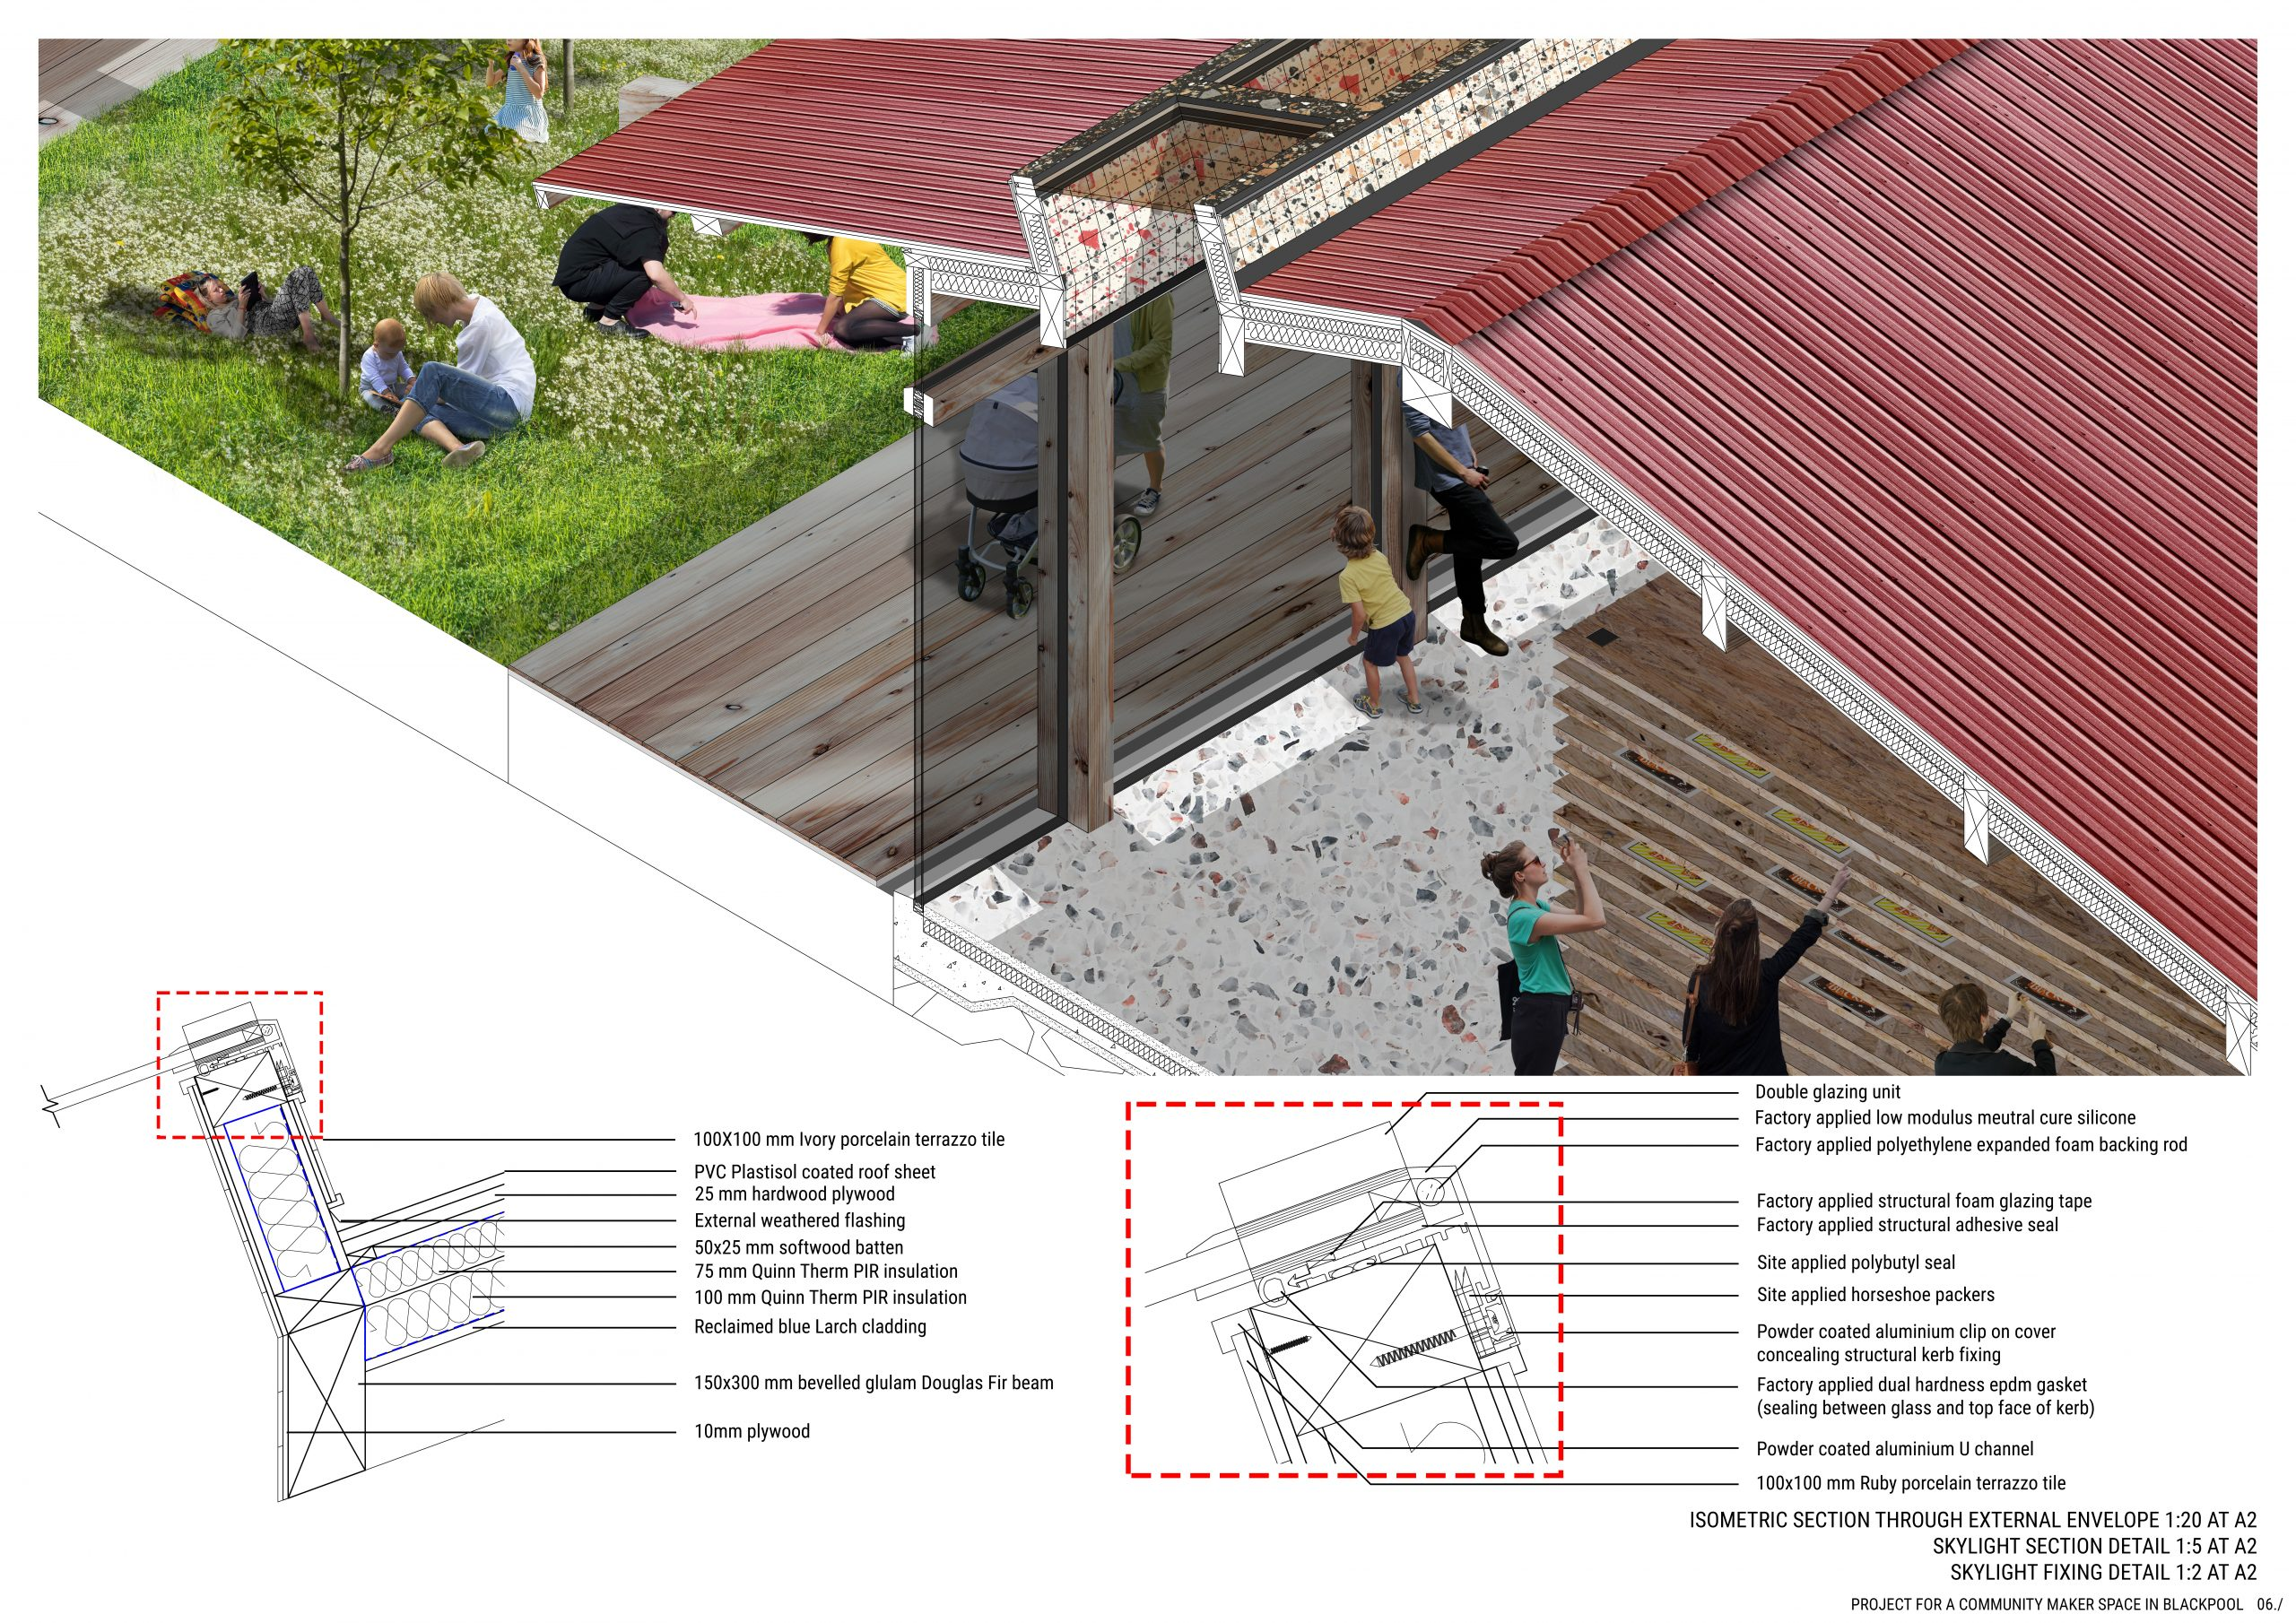 Detail Sections. 12./ Image